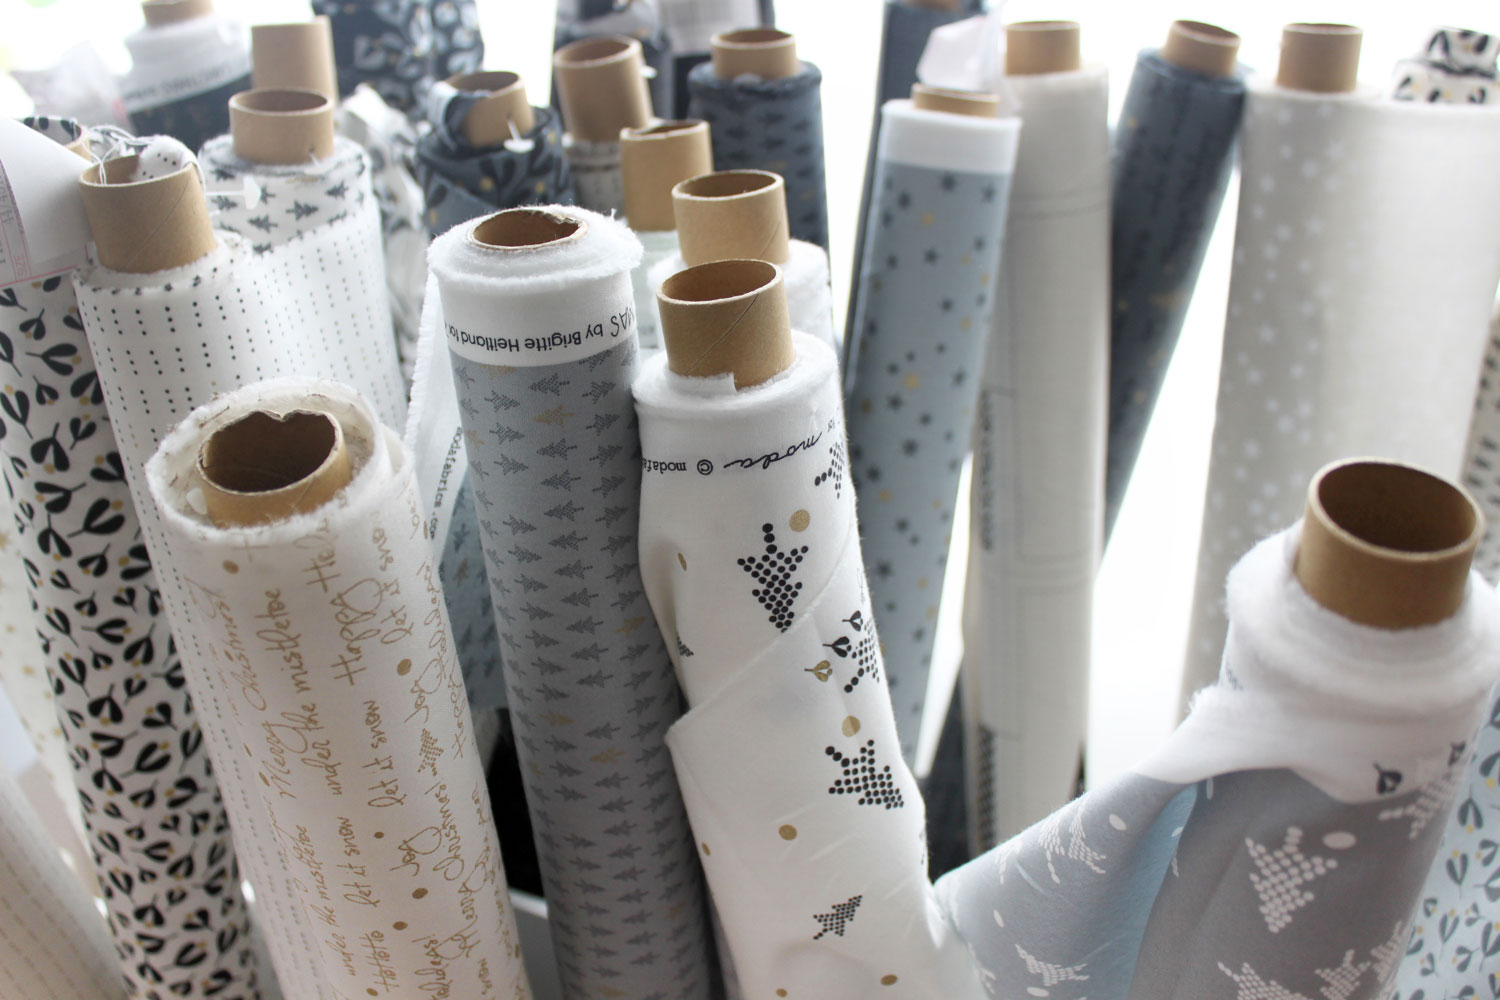 WHITE CHRISTMAS fabrics have hit stores these days